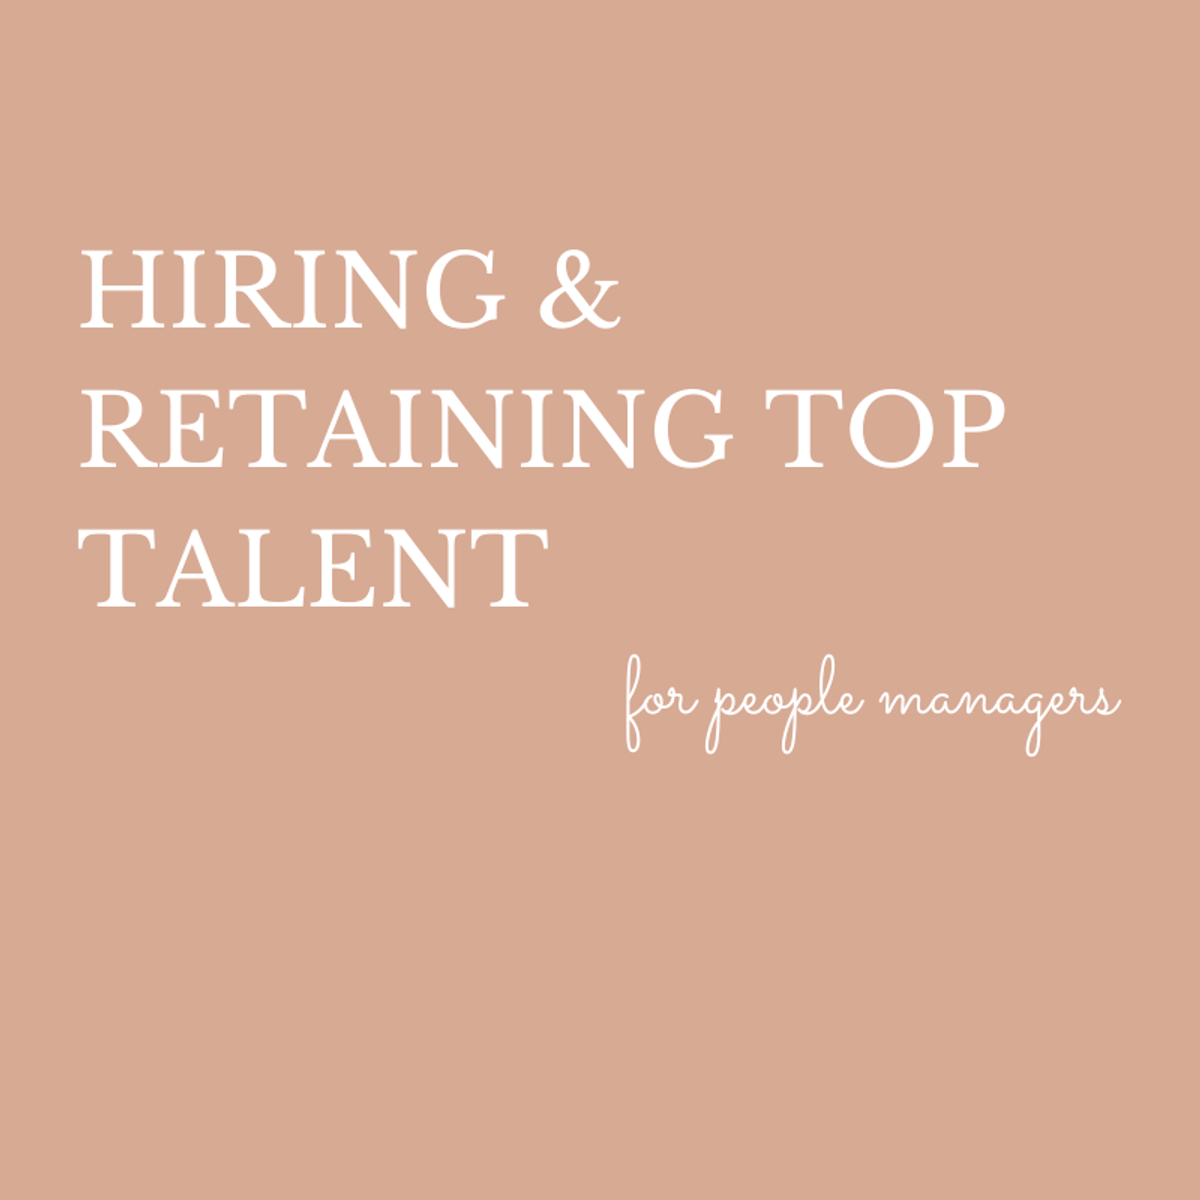 Hiring & Retaining Top Talent for People Managers